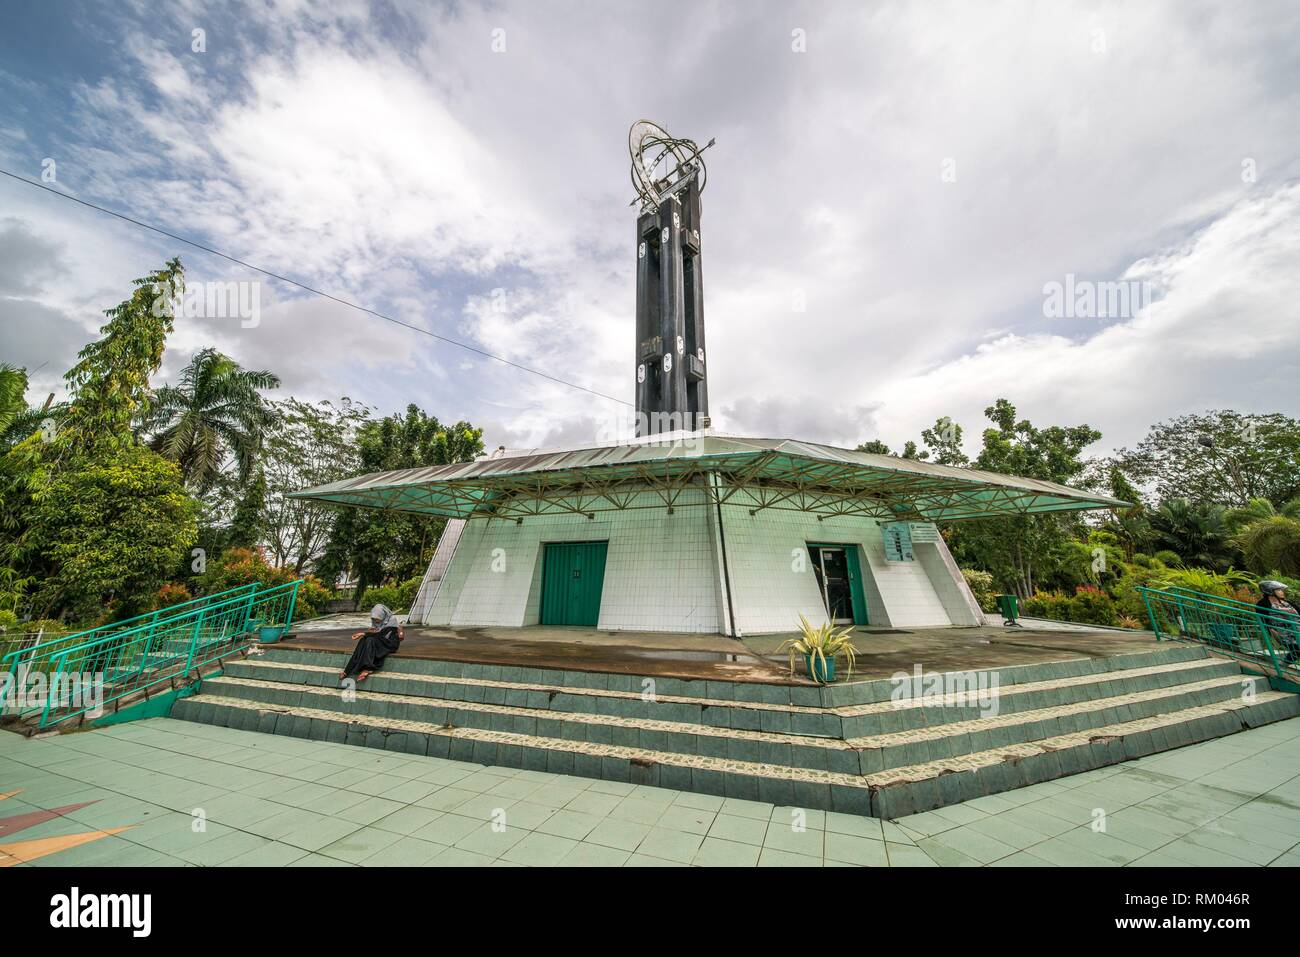 Monument to the Equator, Pontianak, West Kalimantan, Indonesia - Stock Image